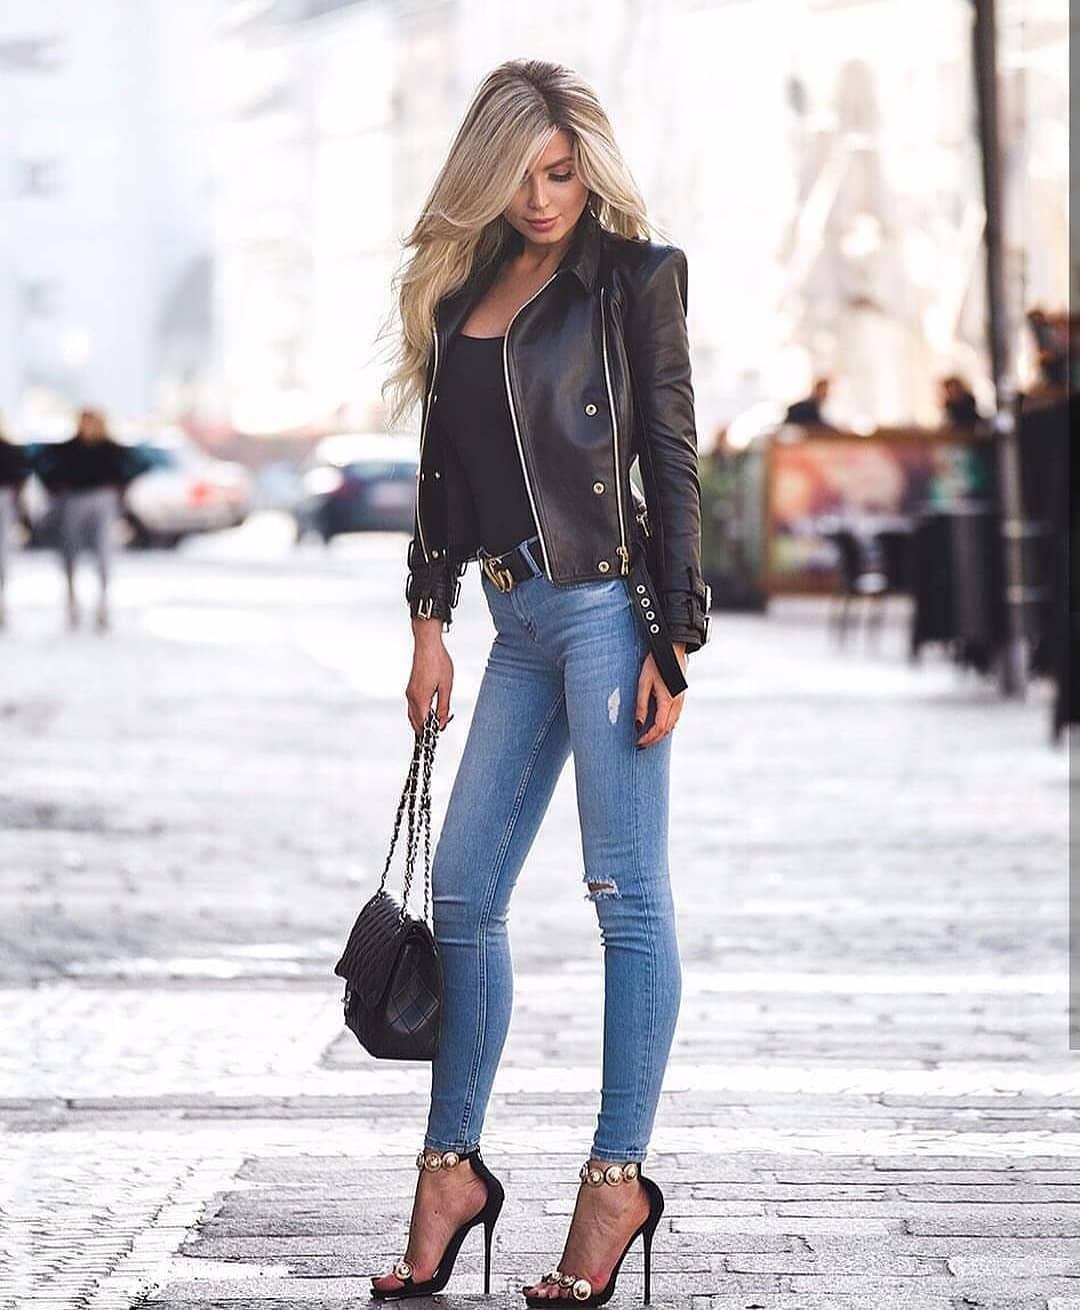 Black Leather Jacket And Skinny Jeans In Blue For Spring 2019